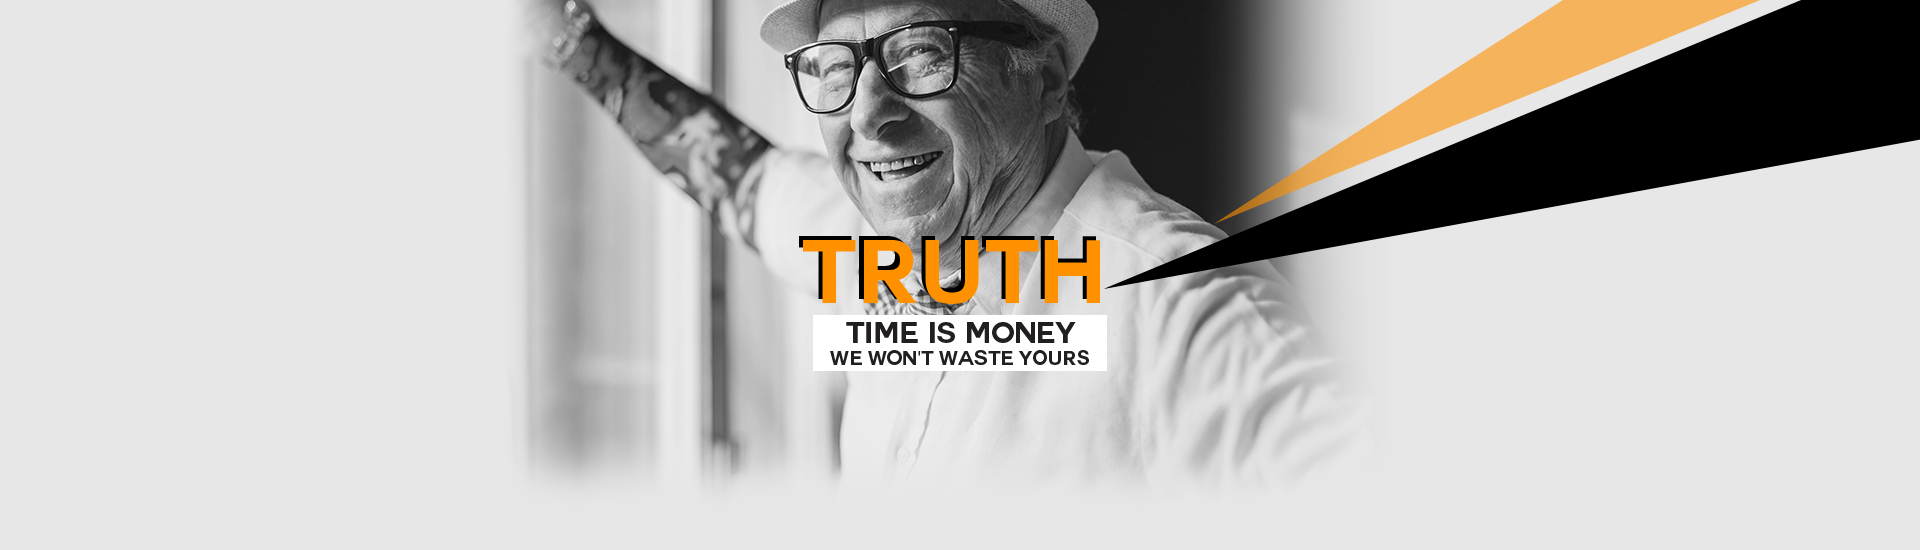 Truth-time-is-money-we-wont-waste-yours-v2